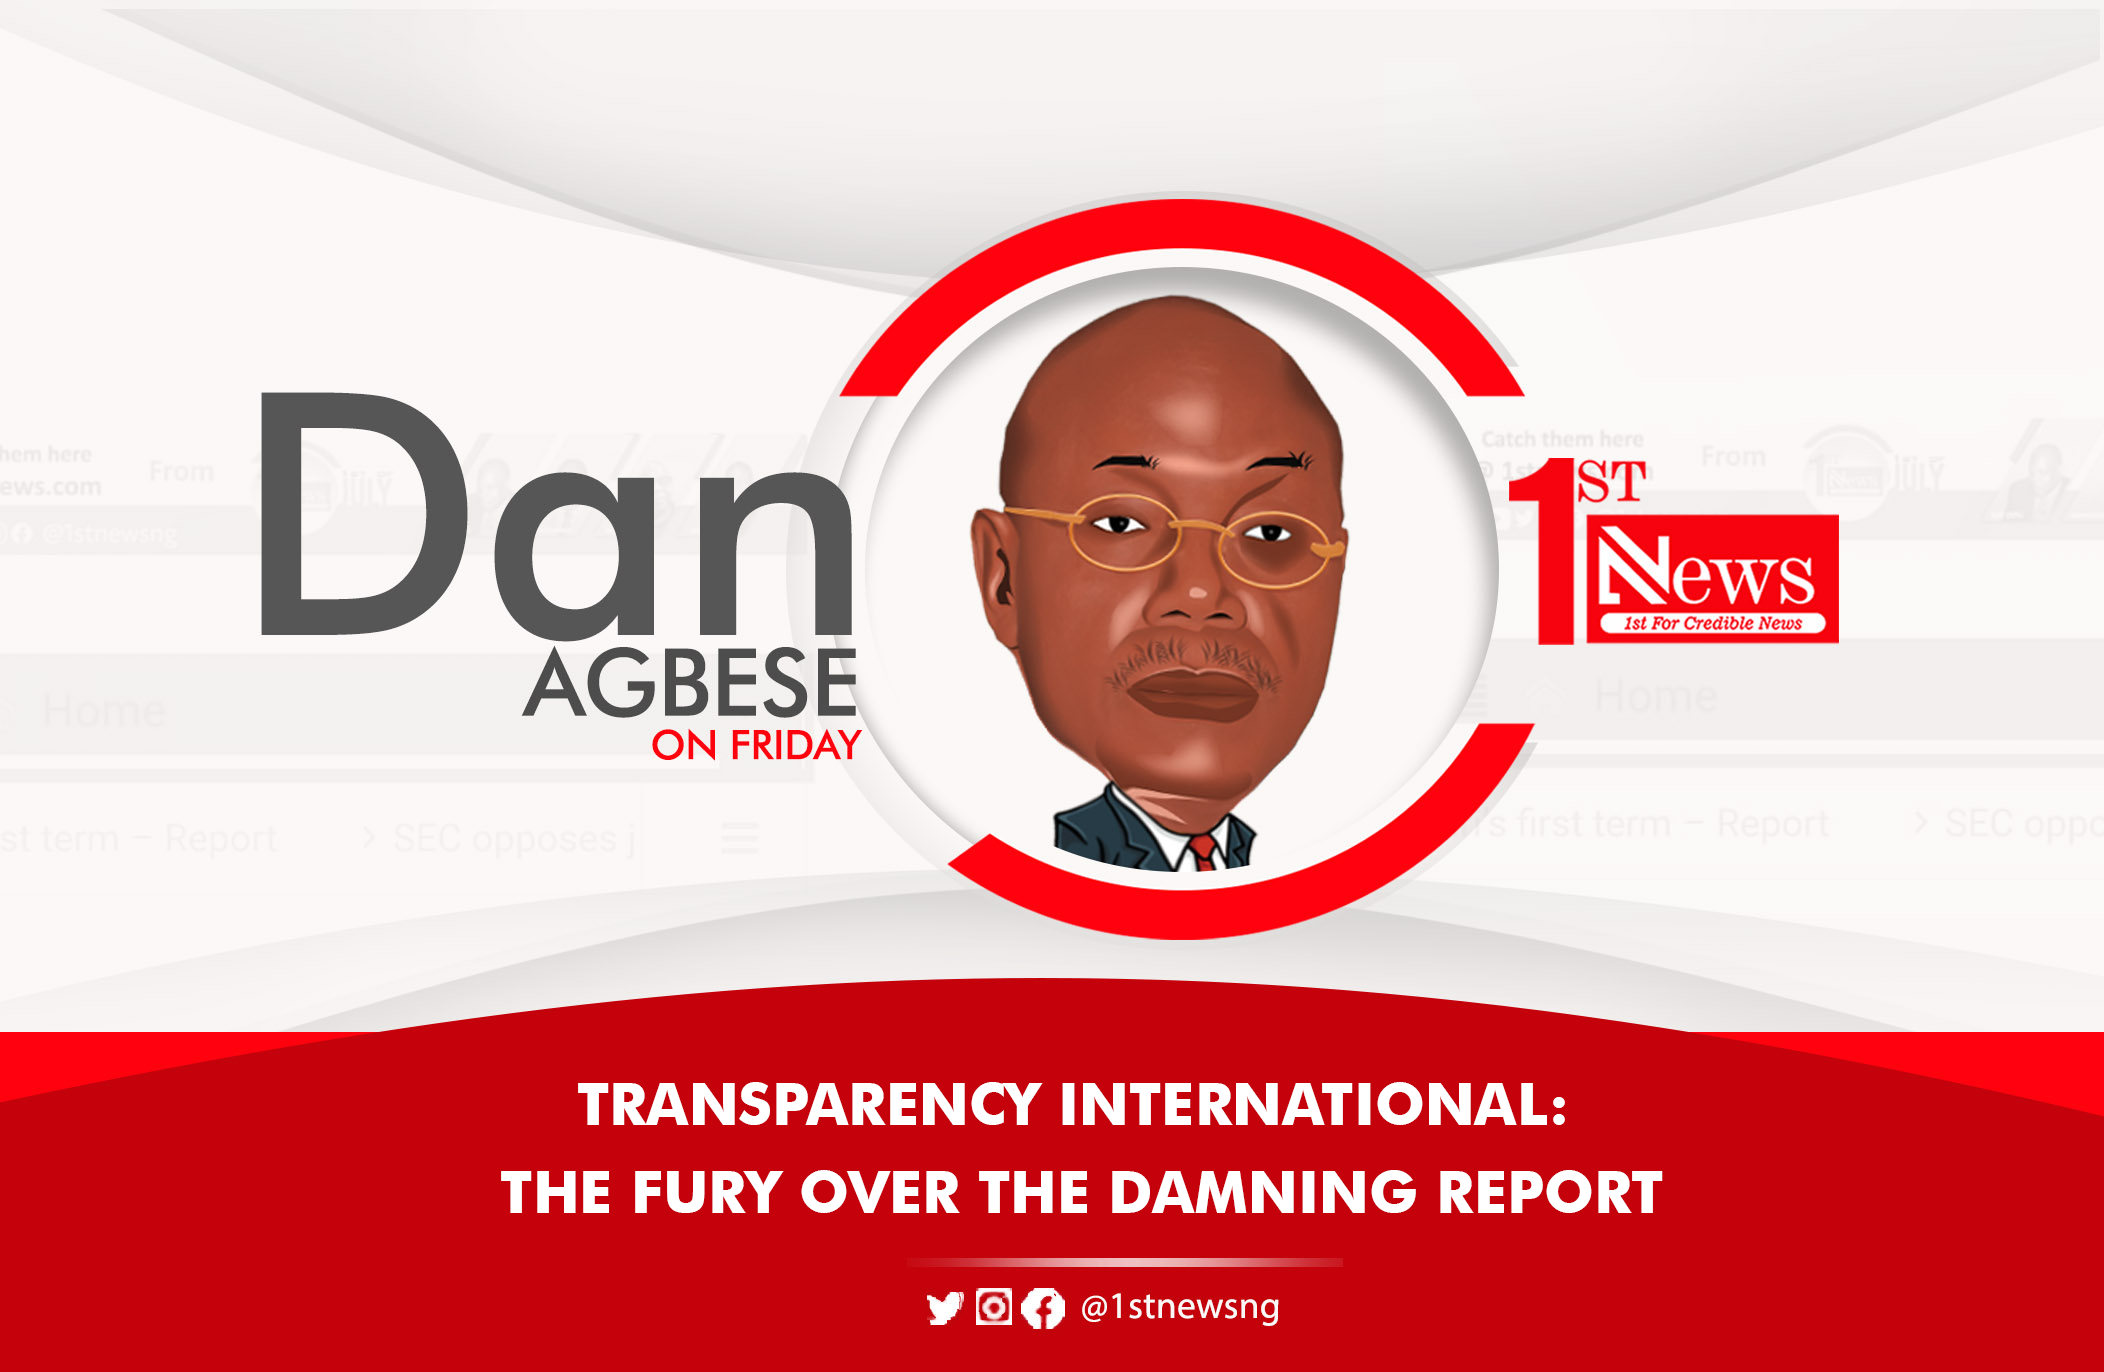 Transparency International: The fury over the damning report  - Dan Agbese